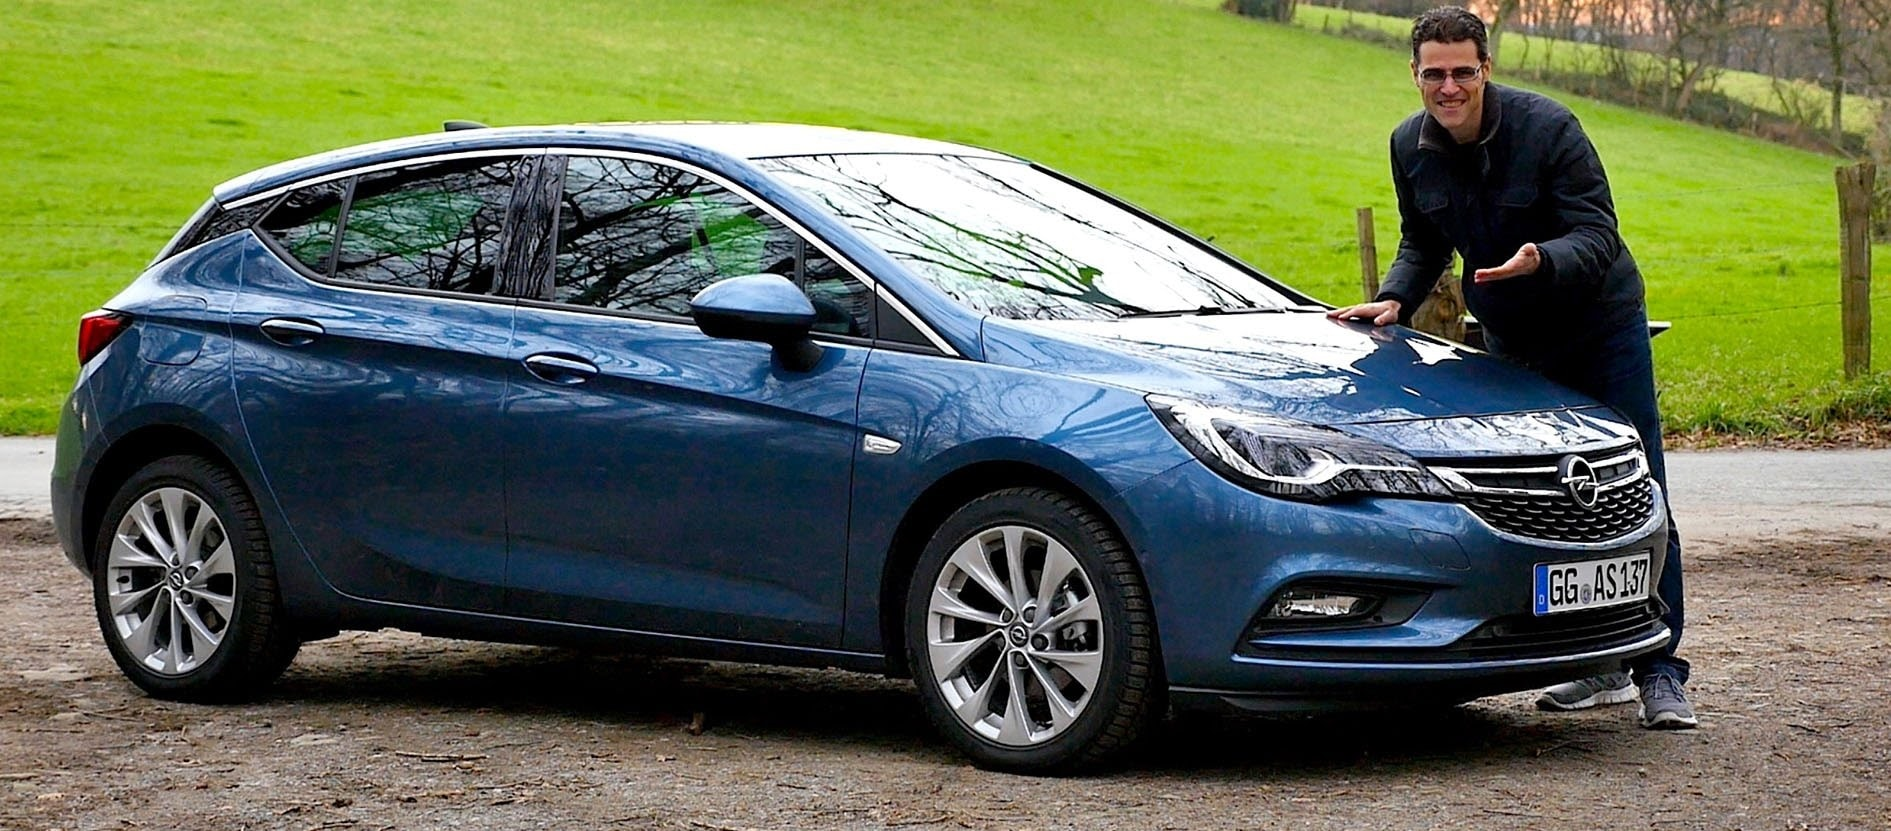 Opel Astra K Wallpapers hd